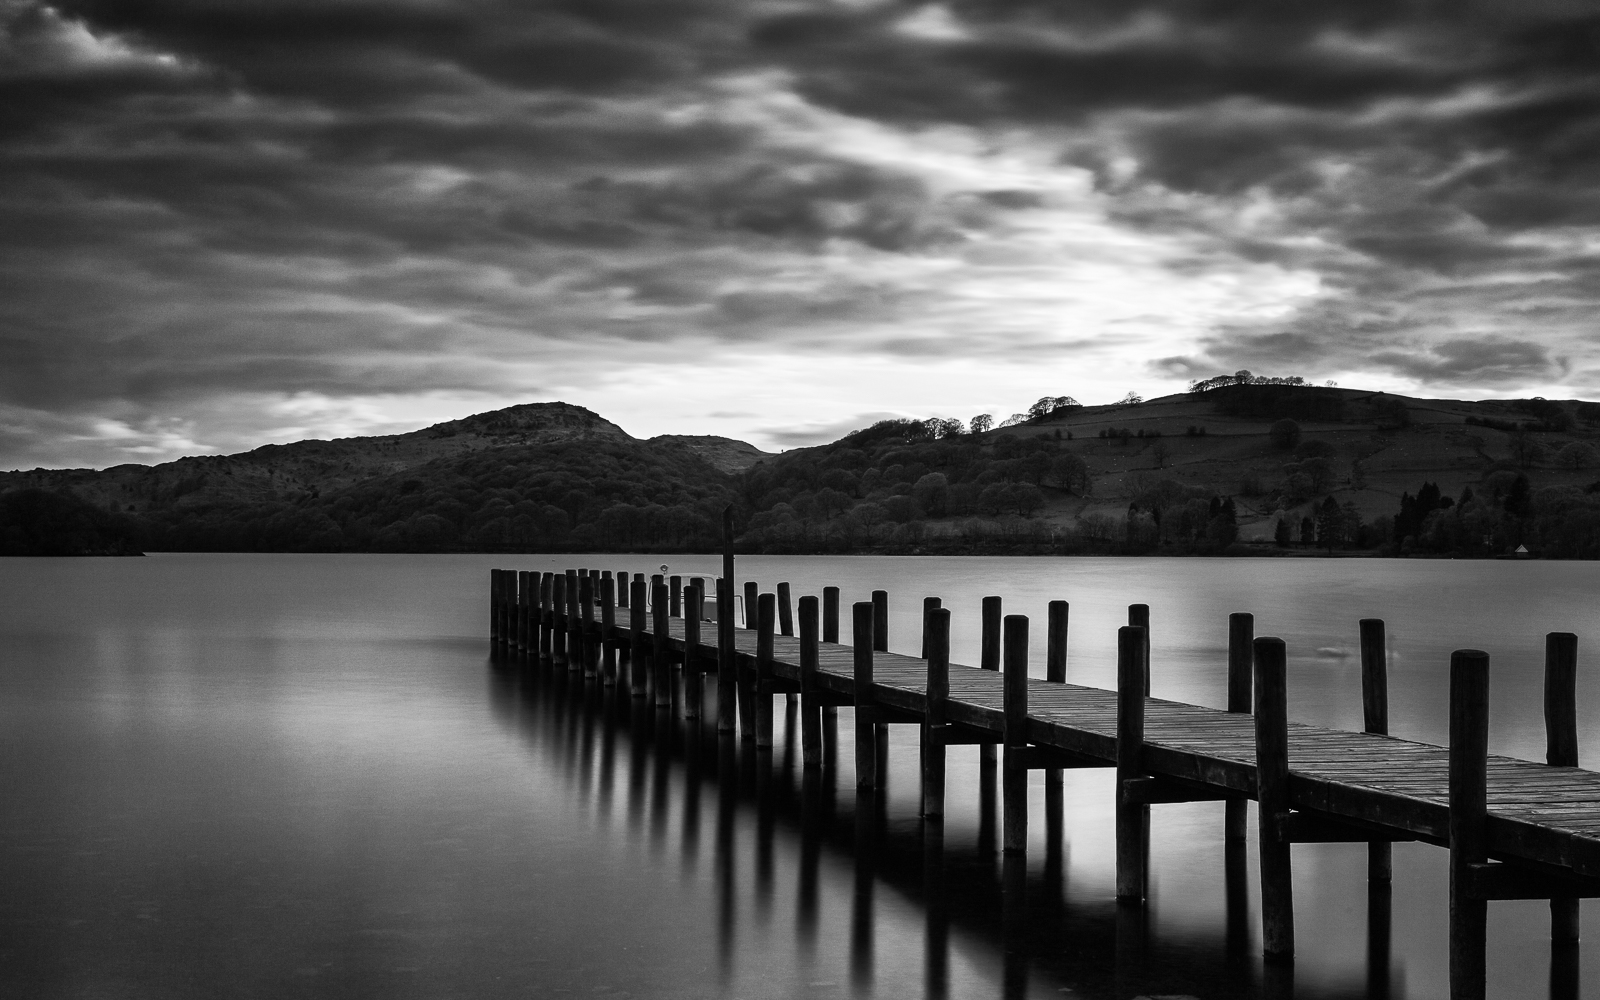 The sun eventually dips below the mountains as the storm clouds move in. Windermere may be the most popular lake in the Lake District but I prefer the quietness of Coniston Water.